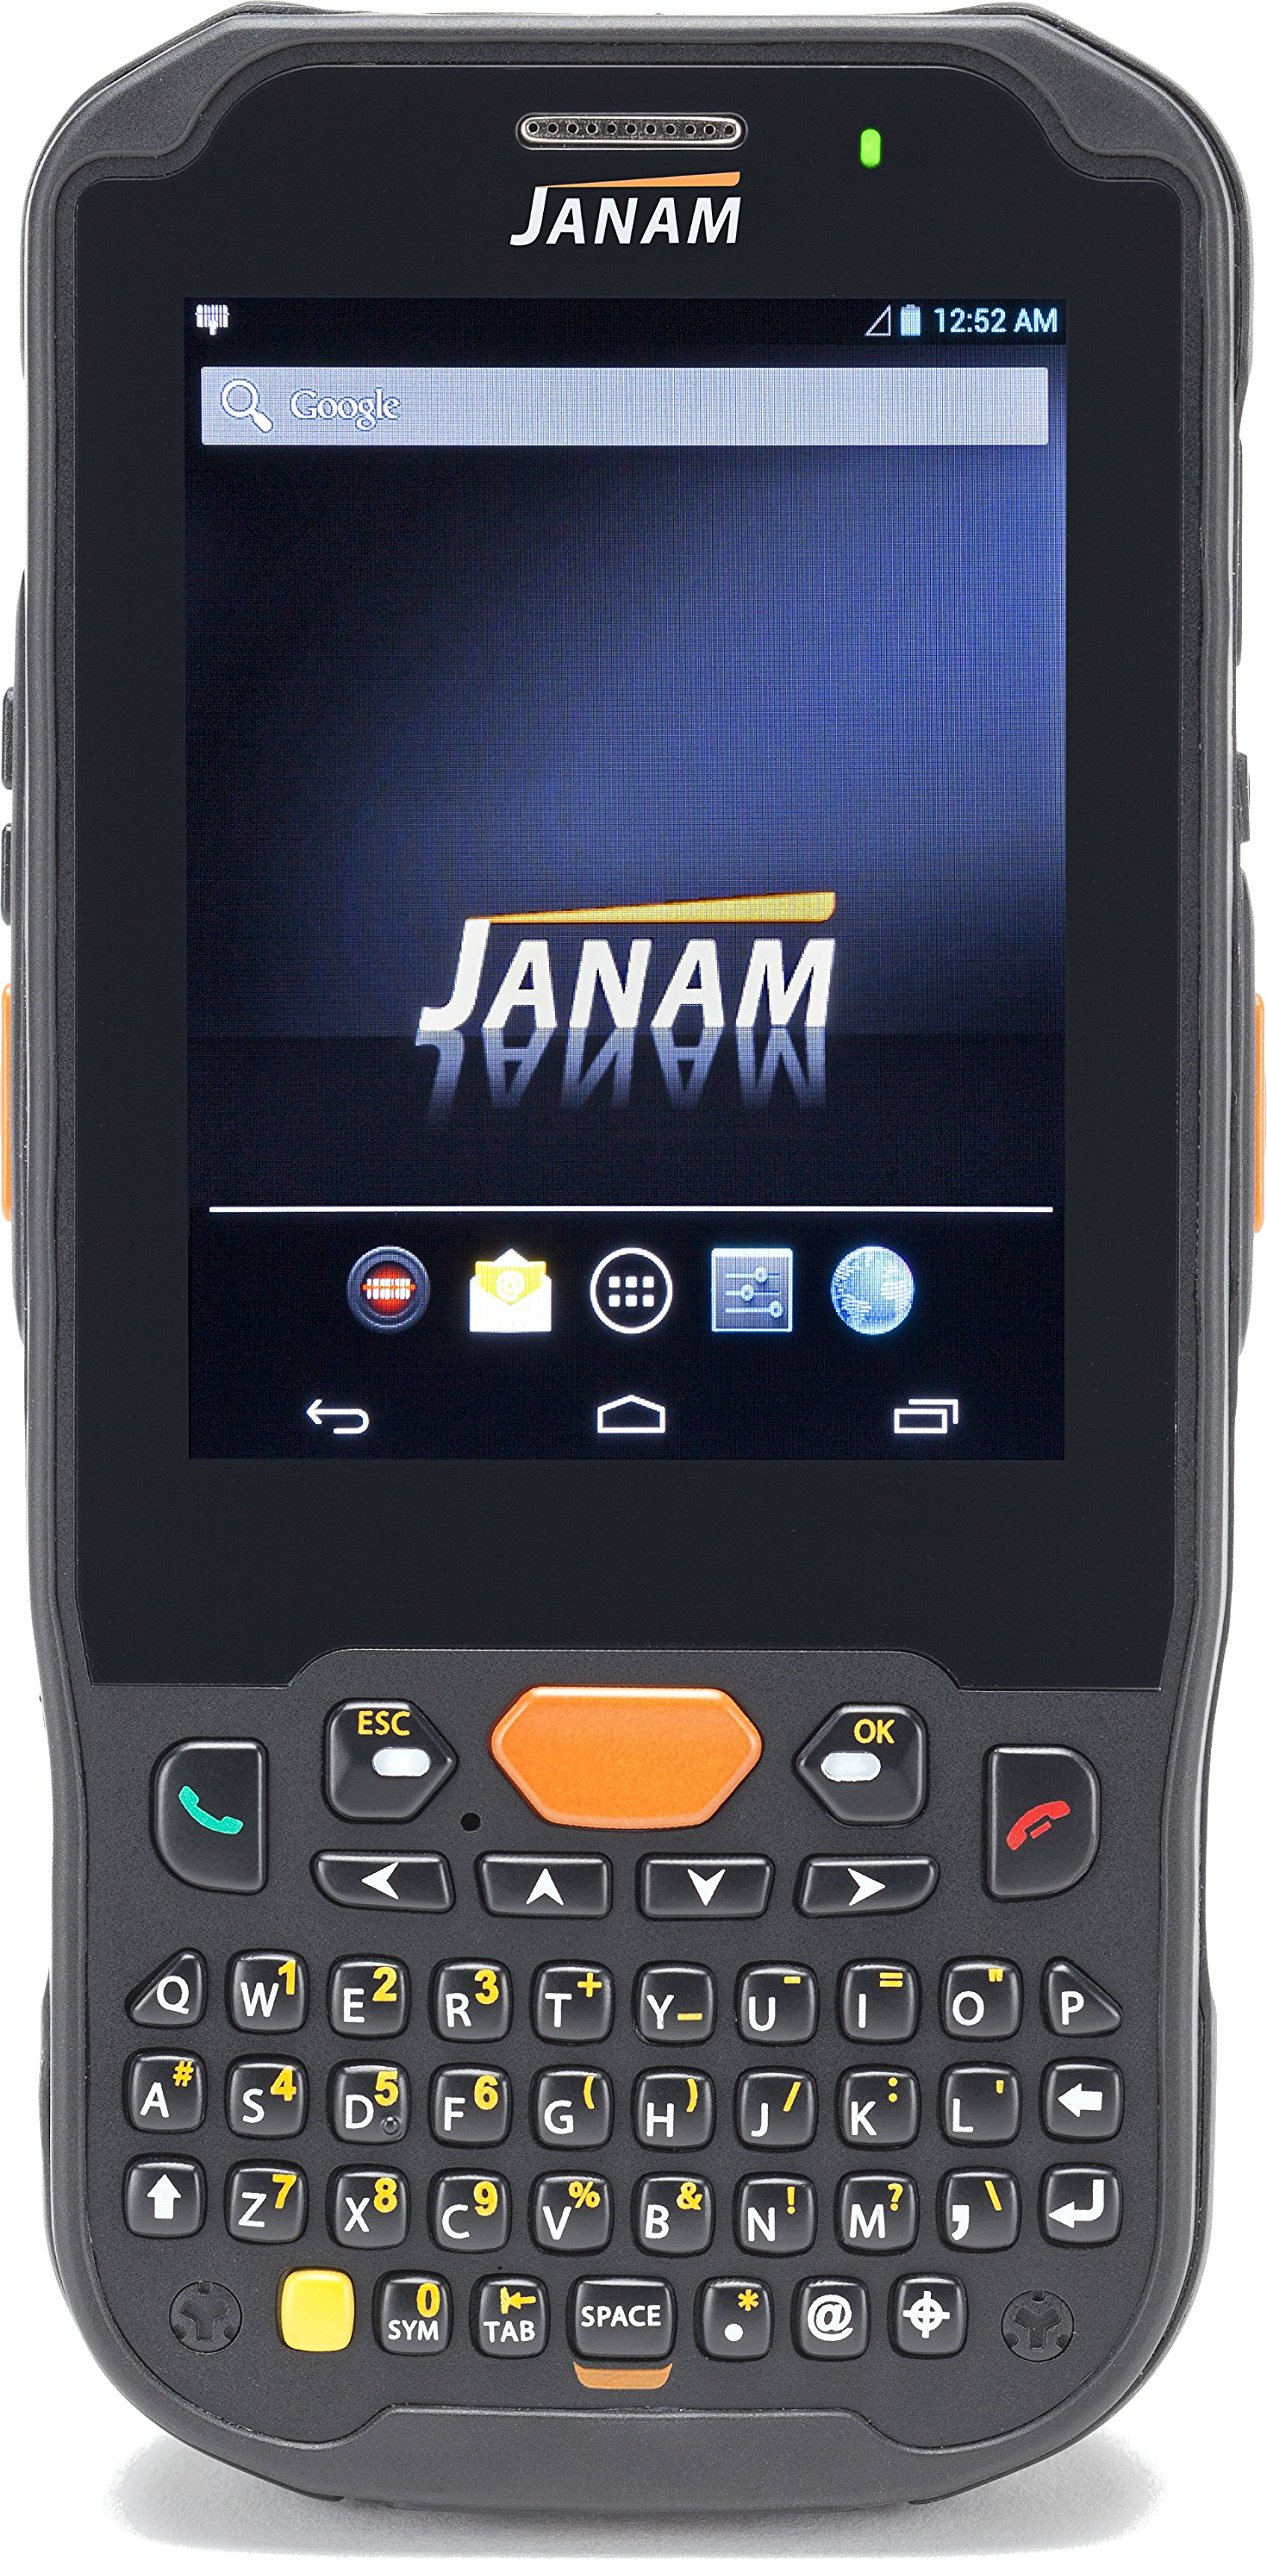 Janam XM5-ZNKARDGV00 Series XM5 Handheld Computing Devices, Android JB 4.2, 1D Laser Scanner, 802.11ABGN, GPS, HD RFID, Camera, 4000 mAh, Numeric Keypad